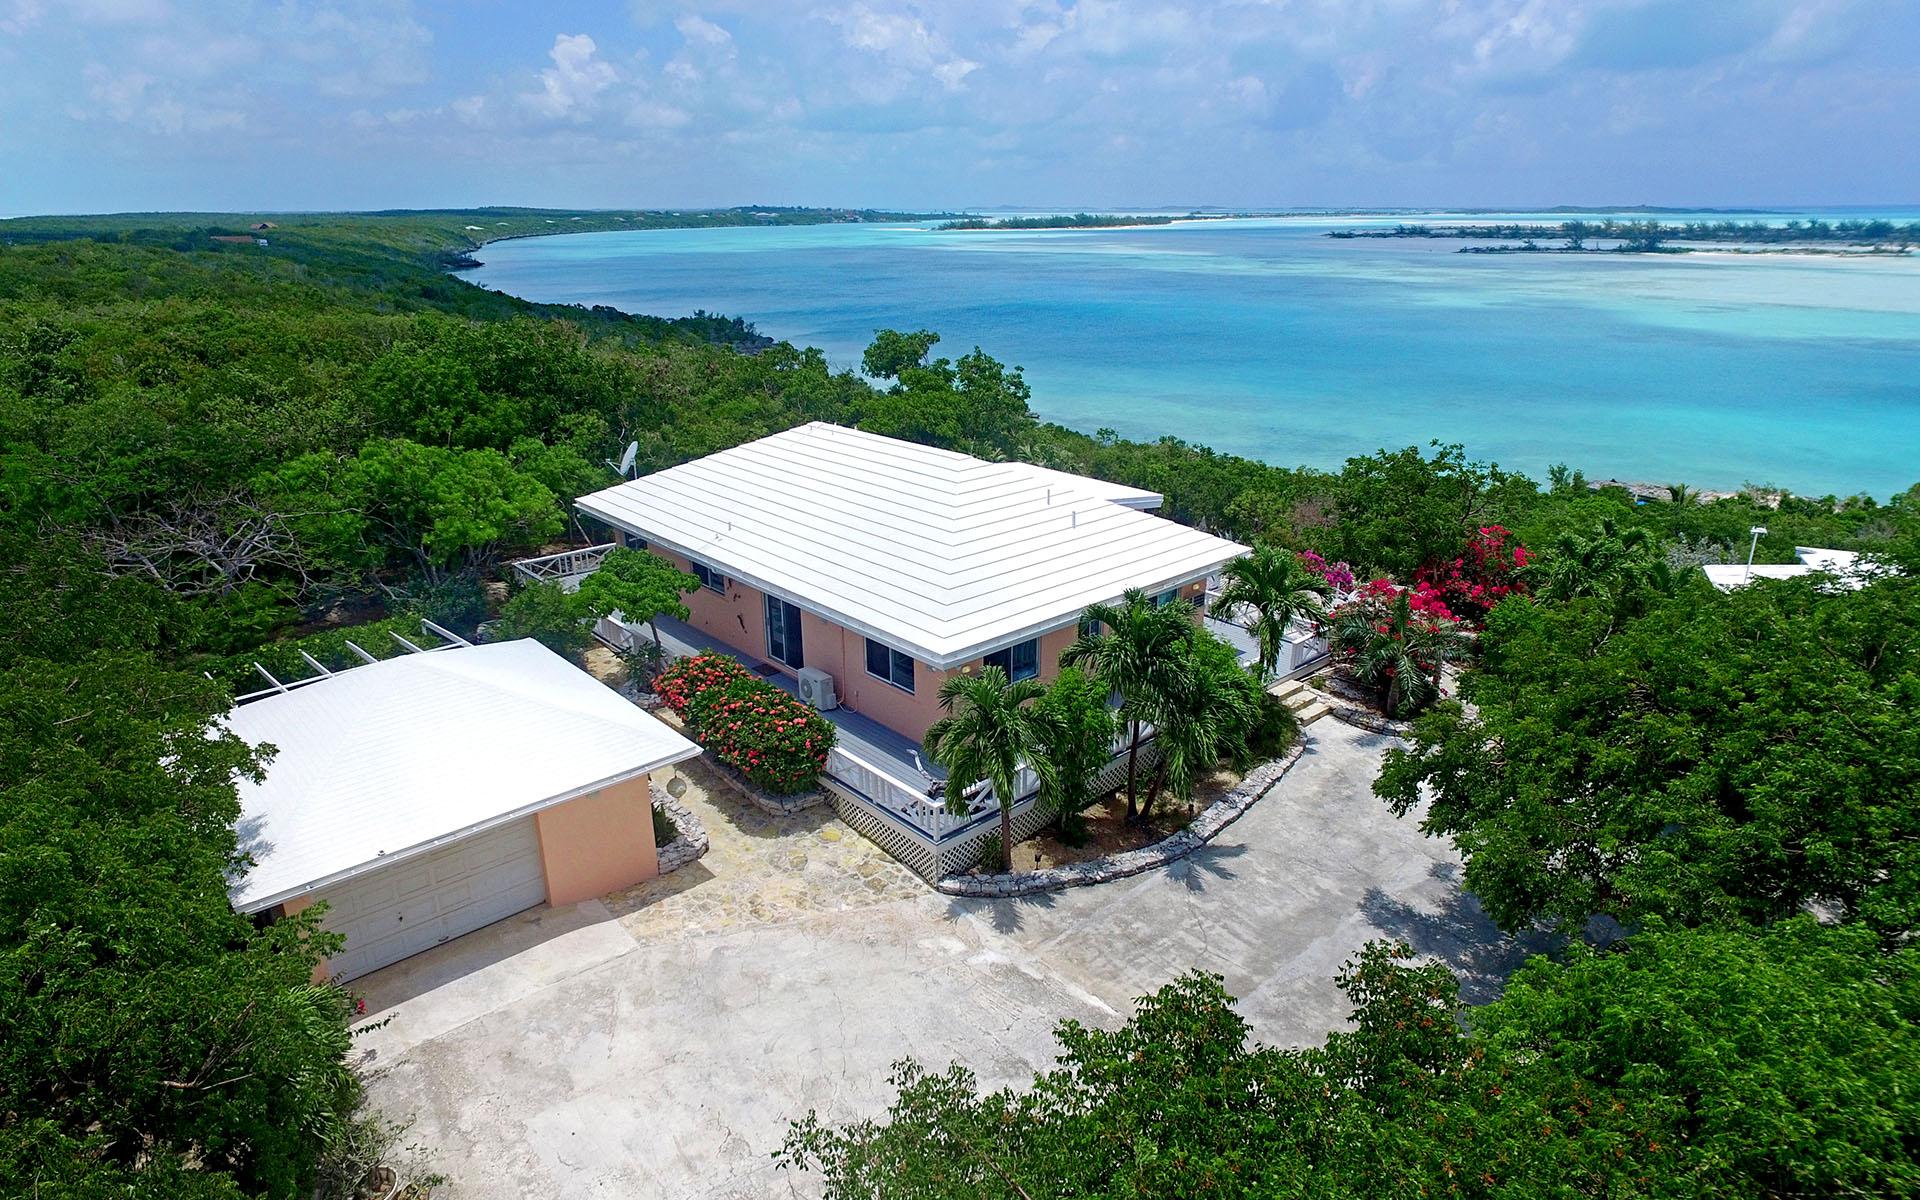 Maison unifamiliale pour l Vente à Madeira - Charming Home and Cottage Overlooking Moriah Harbour Exumas, Bahamas